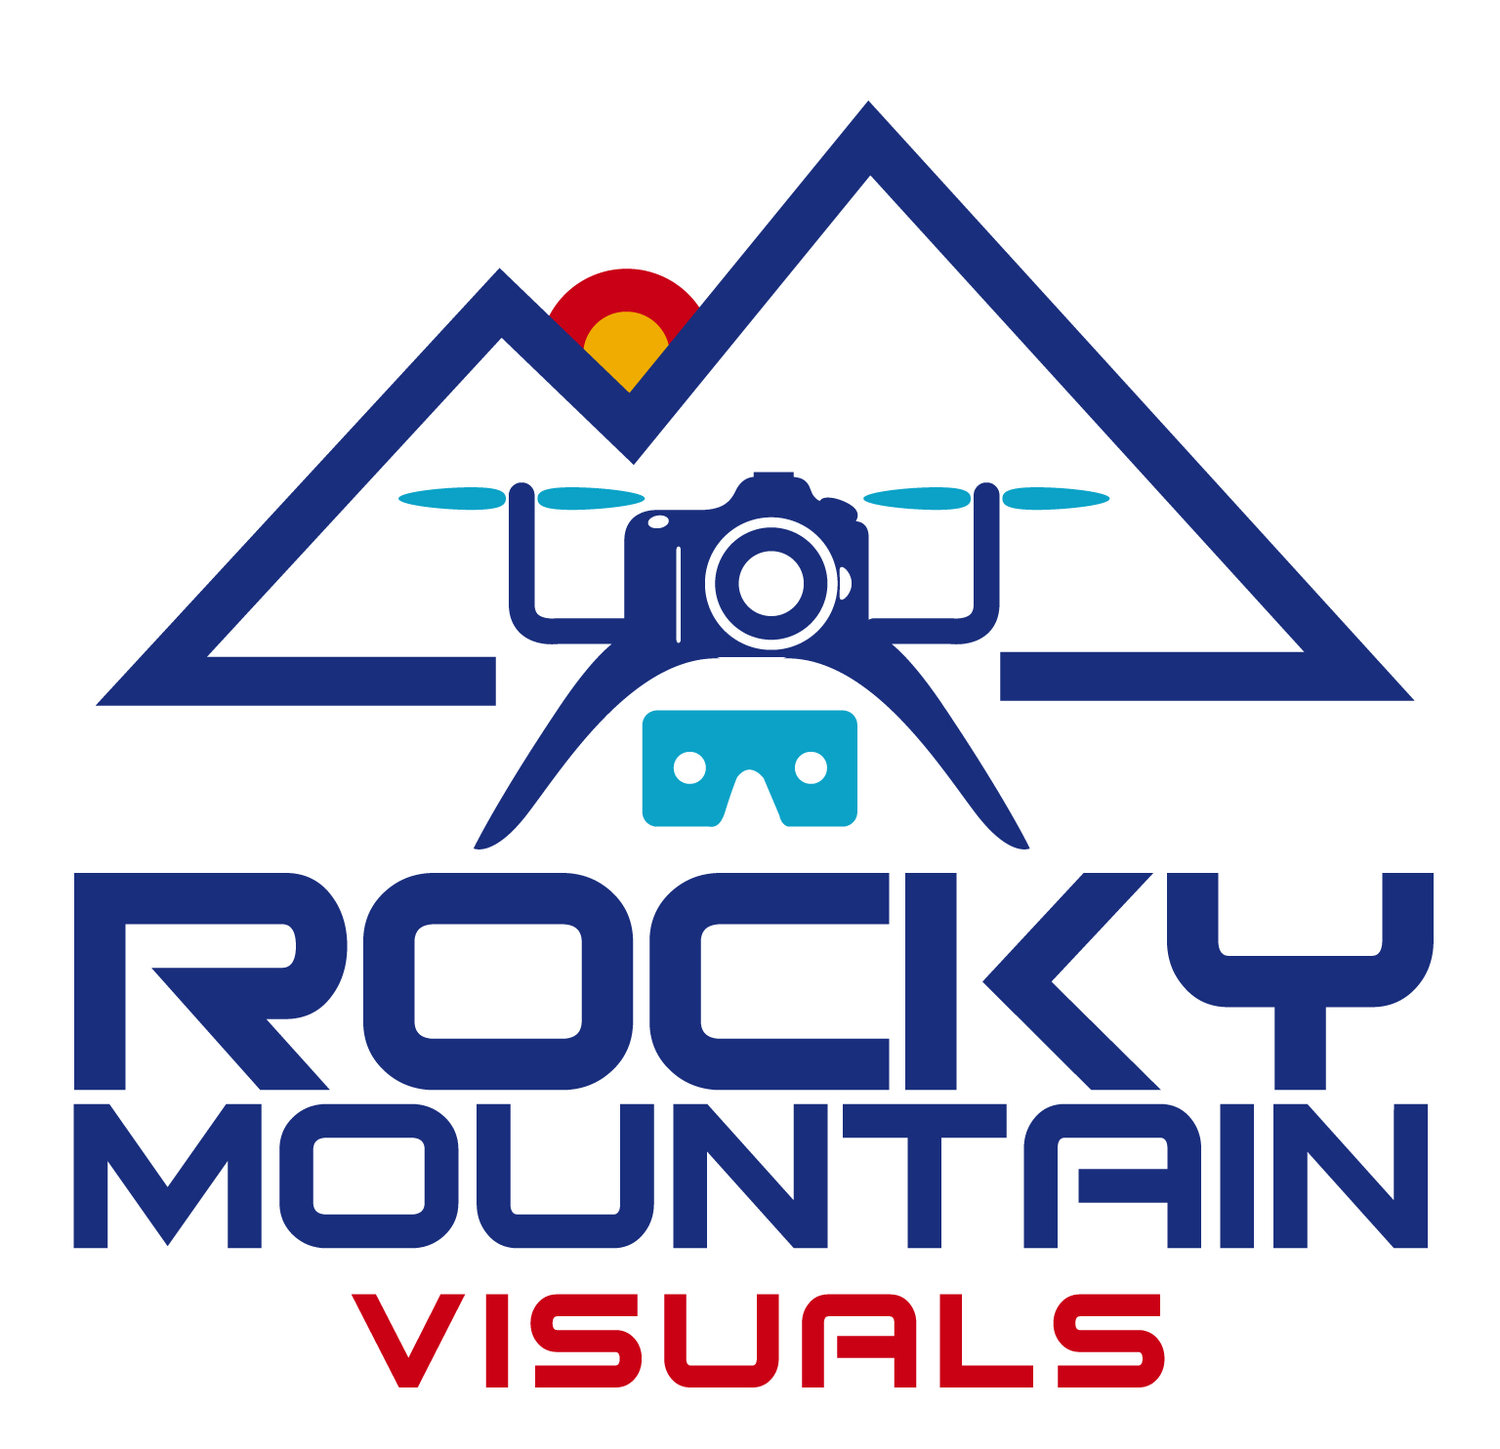 Rocky Mountain Visuals